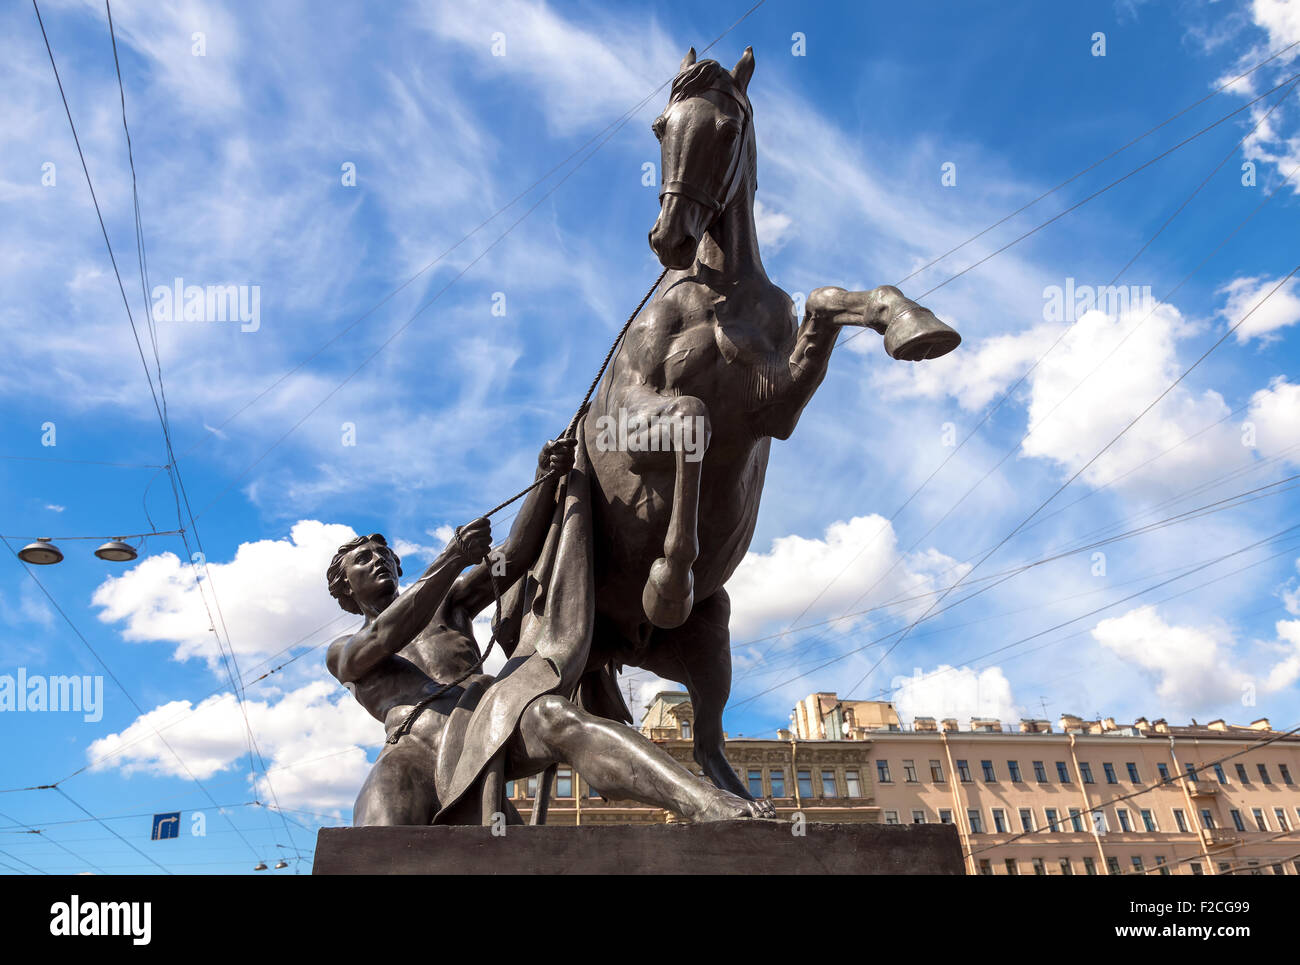 Sculpture tamer of horses, designed by the Russian sculptor Baron Peter Klodt.  Anichkov bridge, St. Petersburg, - Stock Image